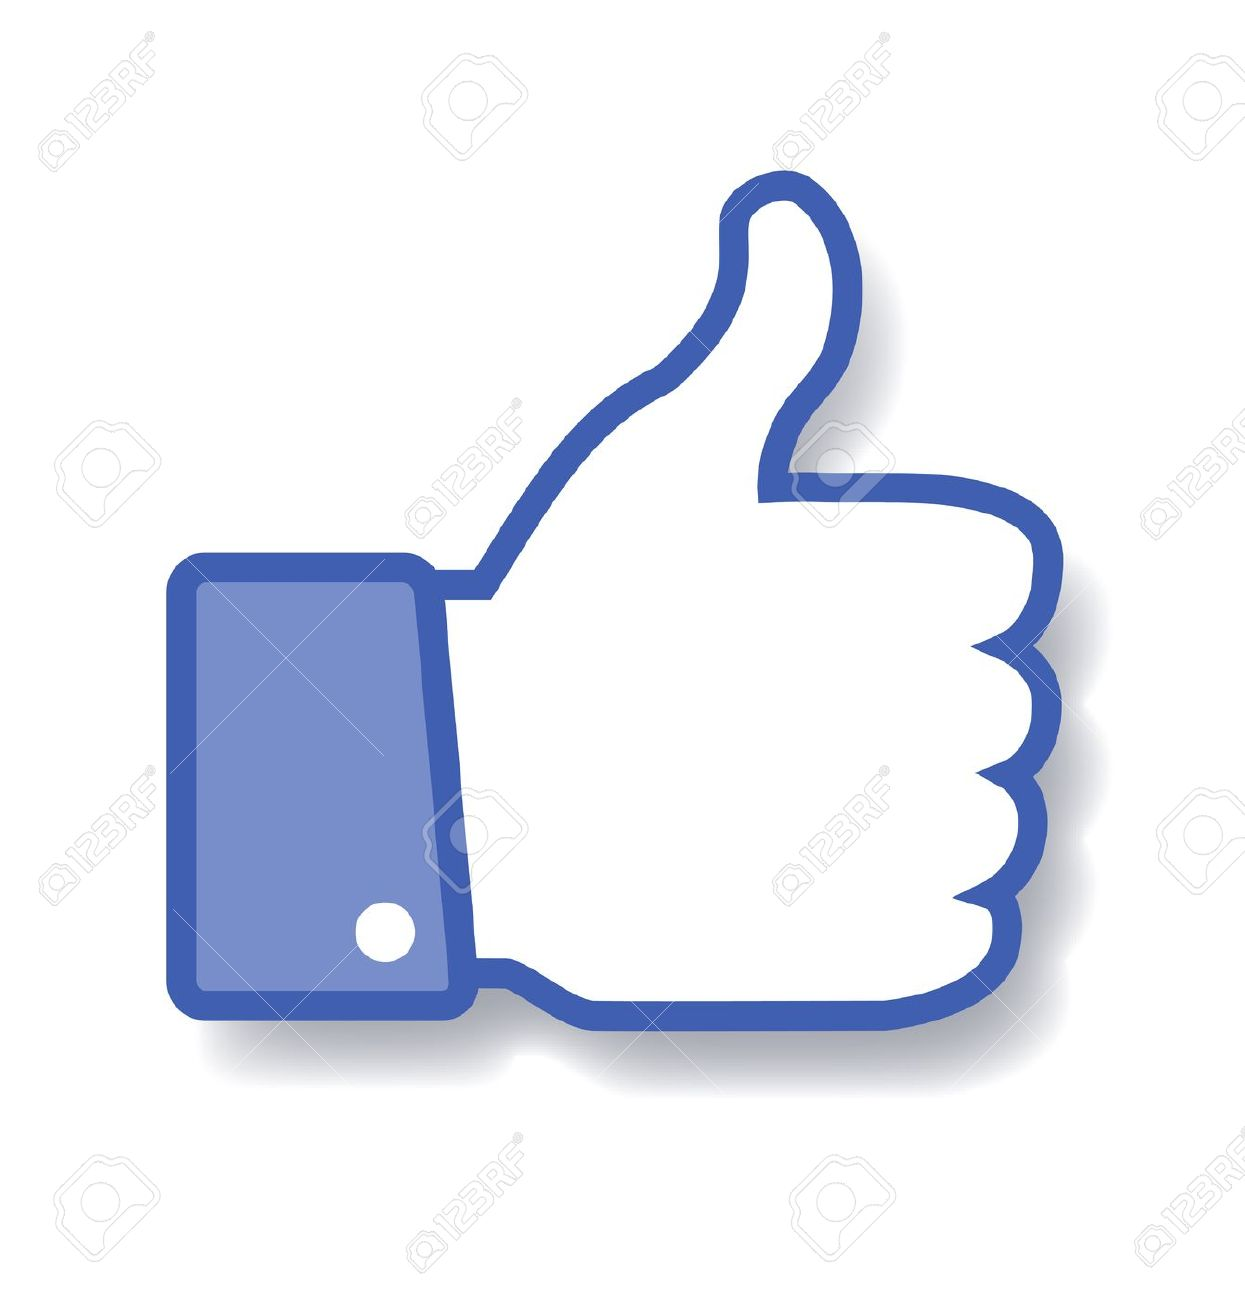 Facebook thumbs up clip art svg transparent stock 13,831 Like Thumbs Up Stock Vector Illustration And Royalty Free ... svg transparent stock